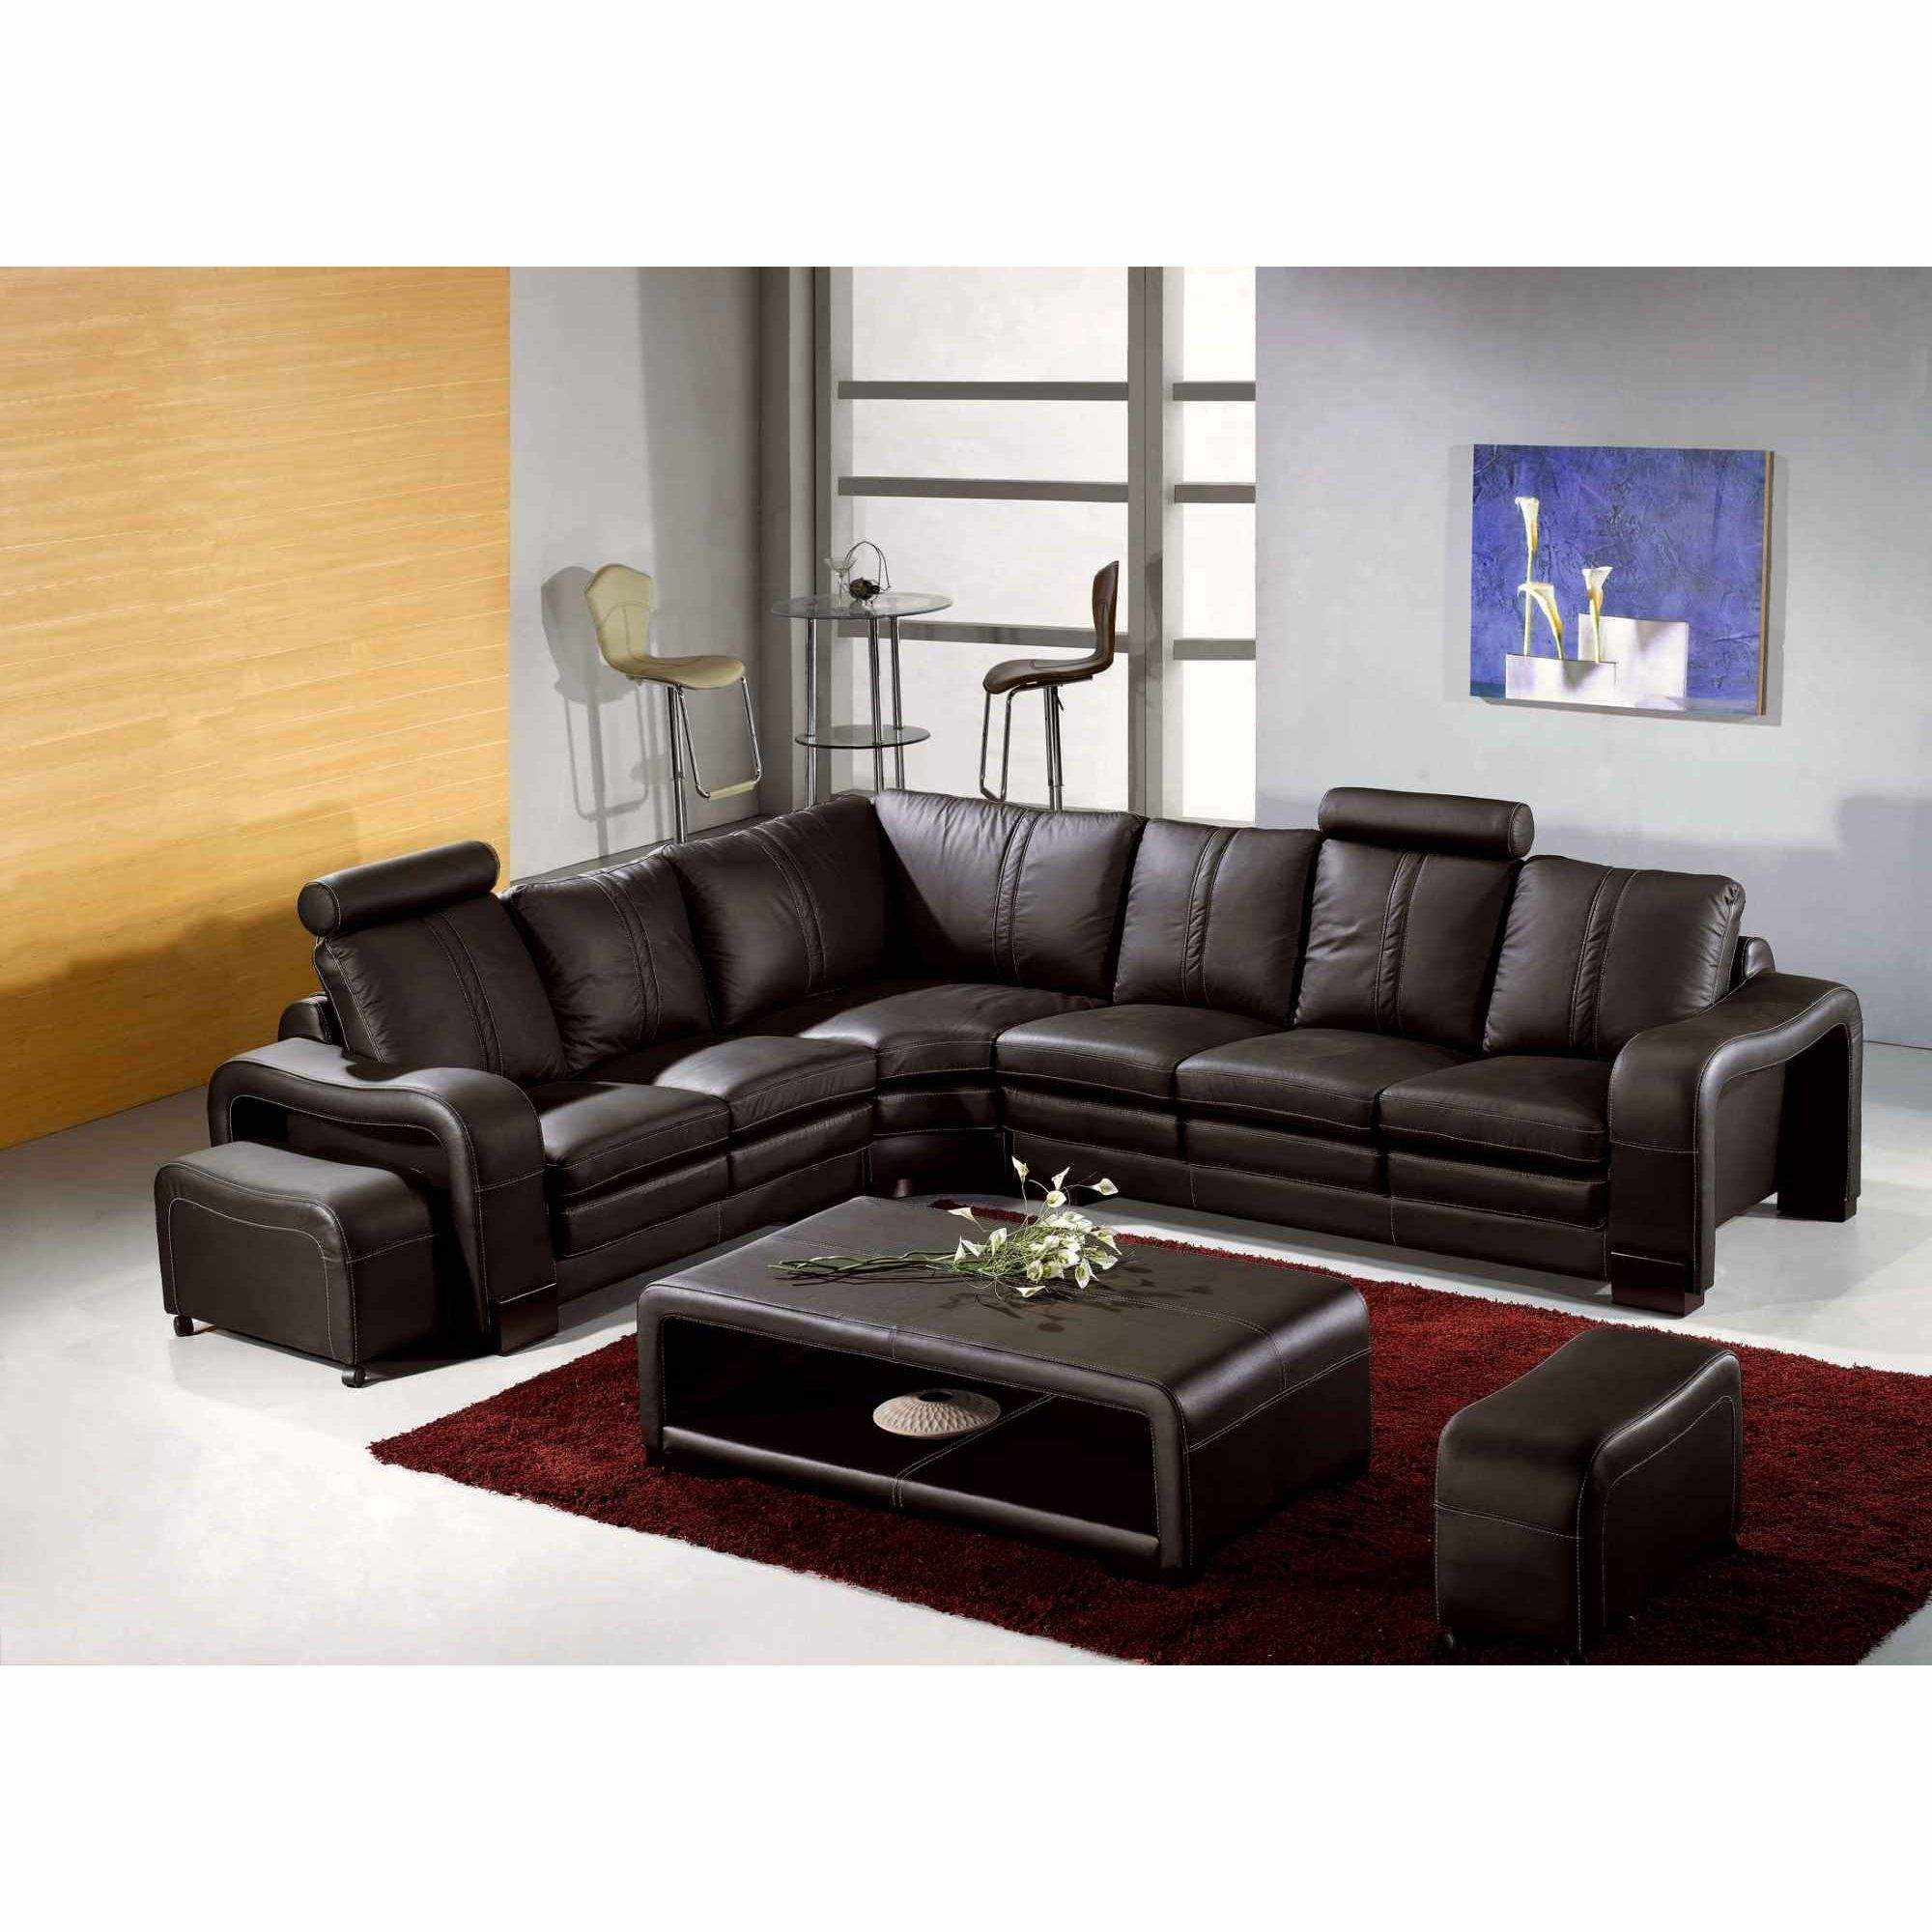 deco in paris canape d angle en cuir marron avec appuie. Black Bedroom Furniture Sets. Home Design Ideas